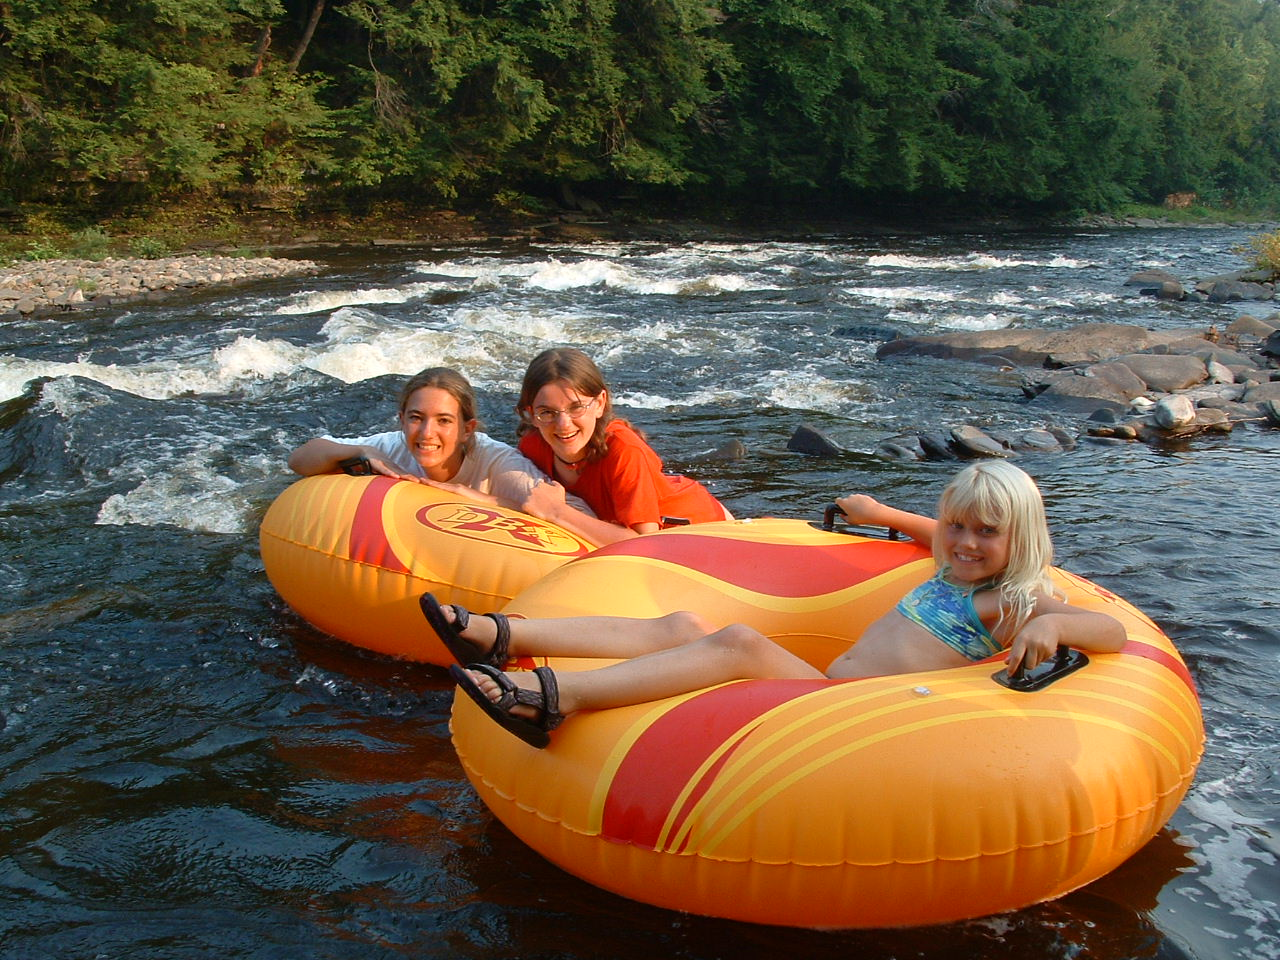 Wellnesste Lodge- River Tubing Fun